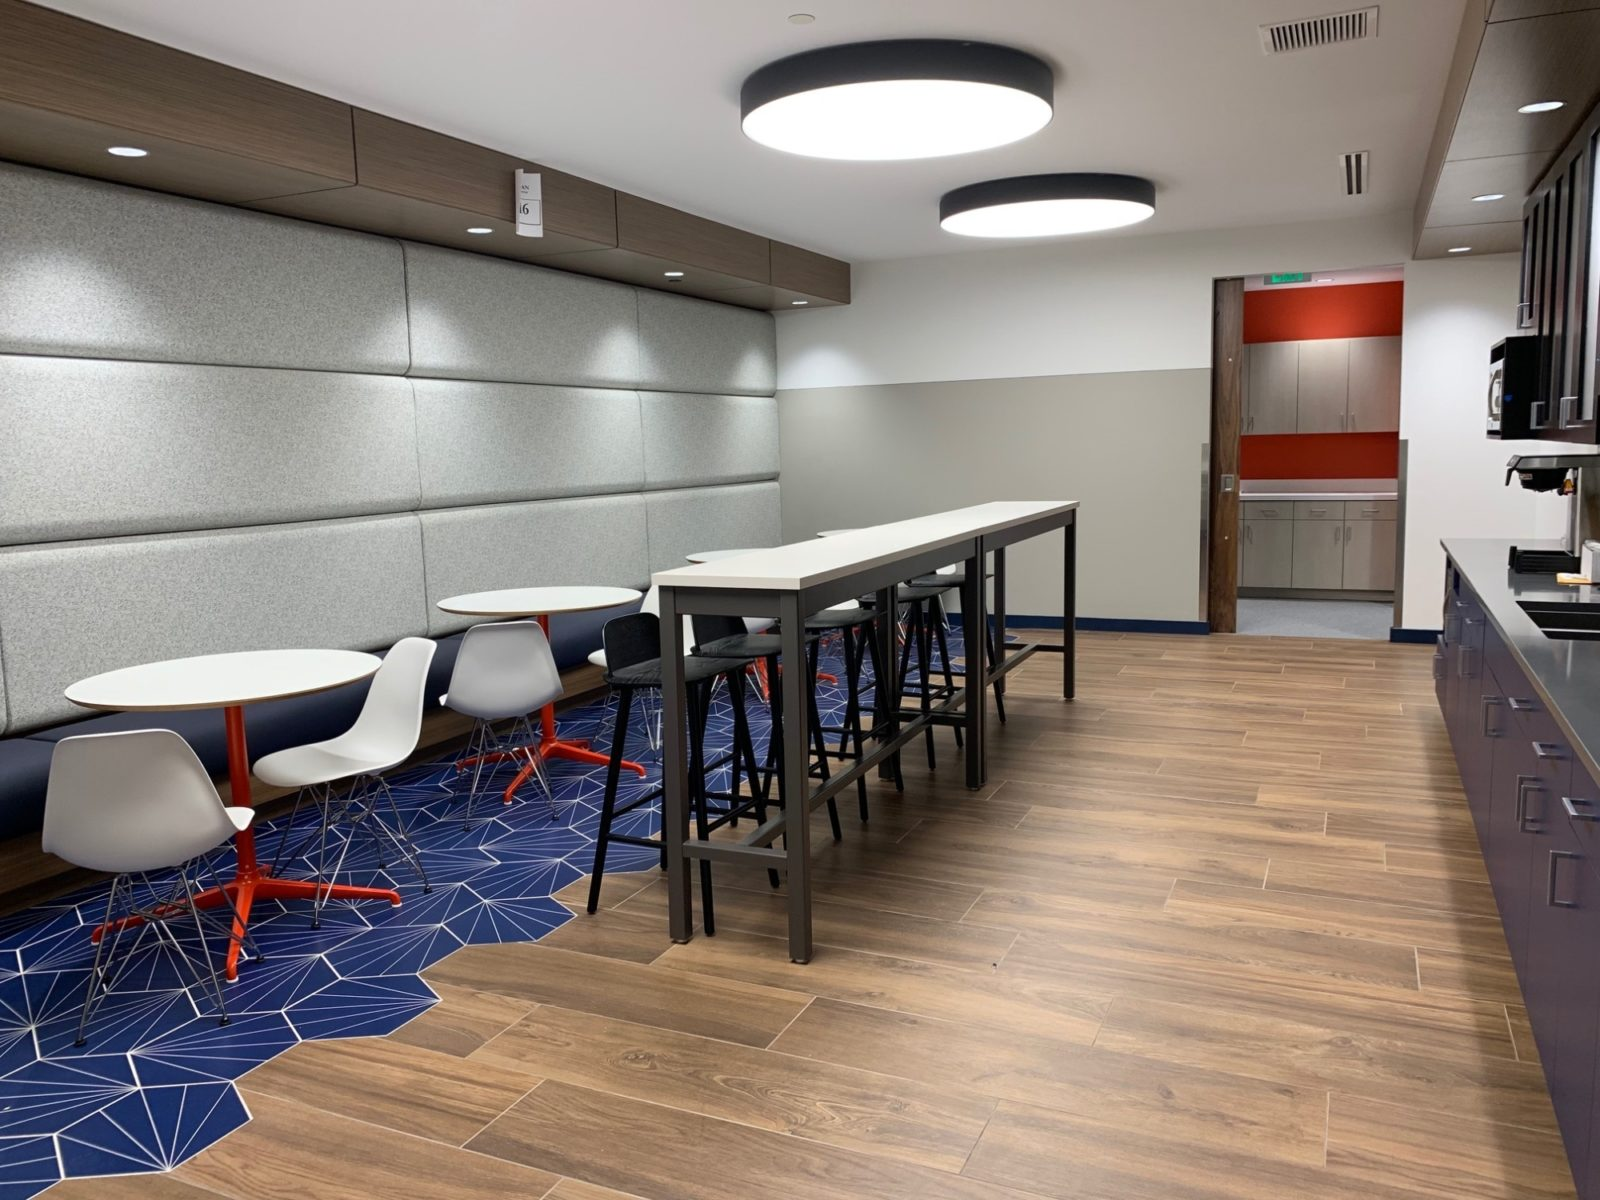 Kitchen and dining area in the Goodman Campbell Brain and Spine center